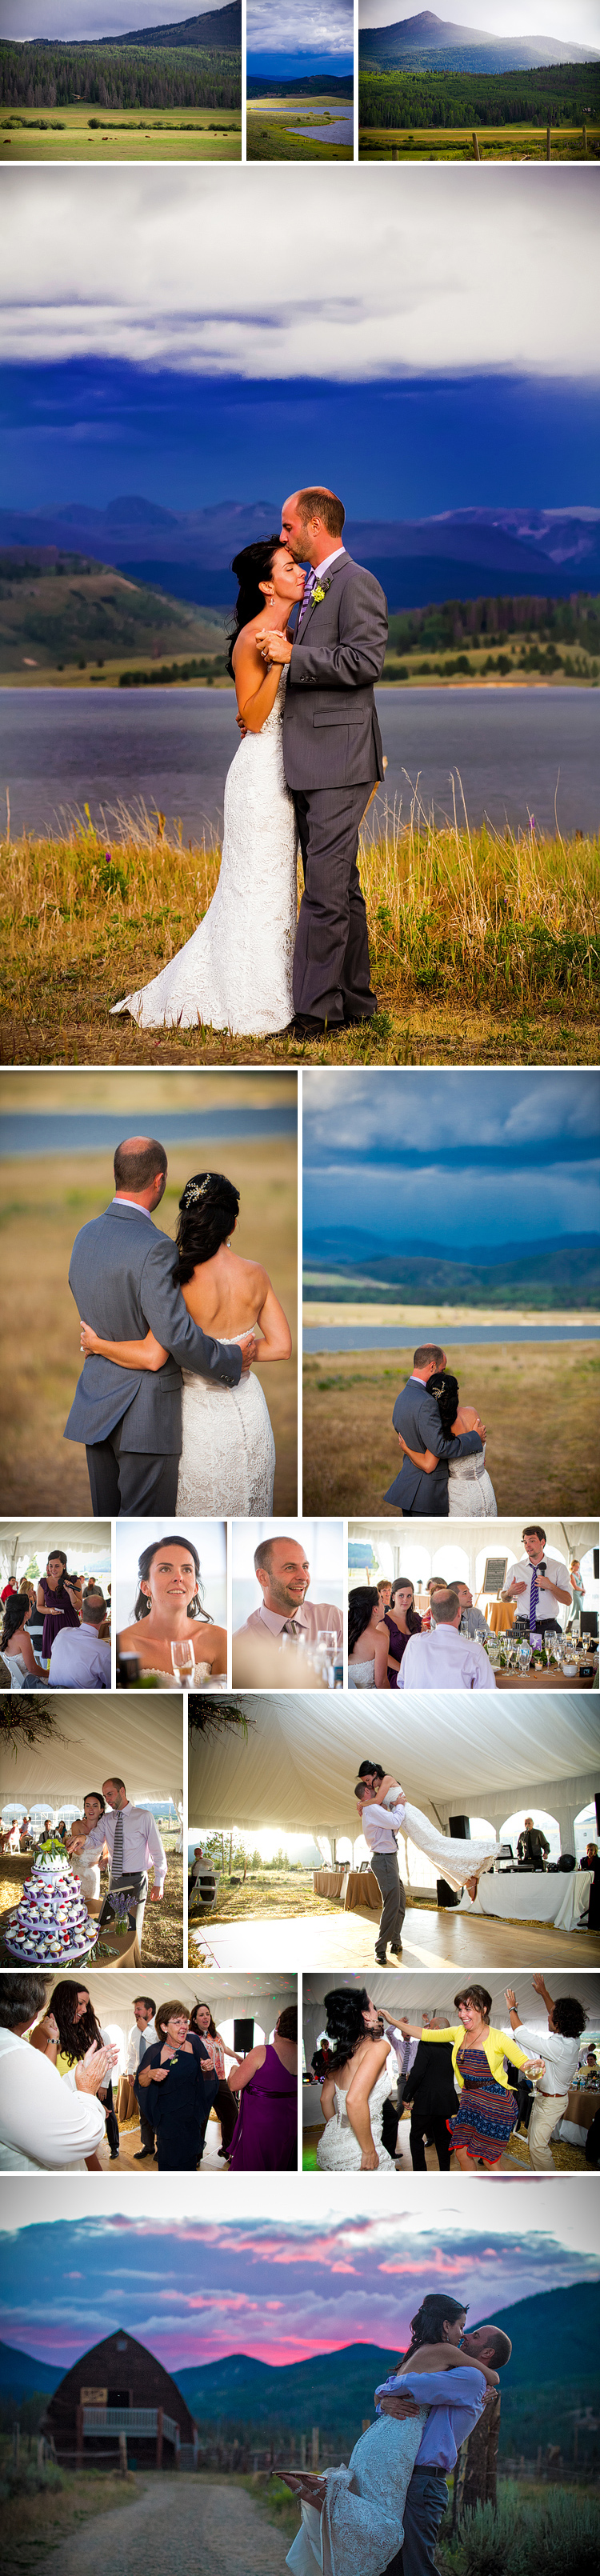 steamboat-springs-fetcher-barn-wedding04